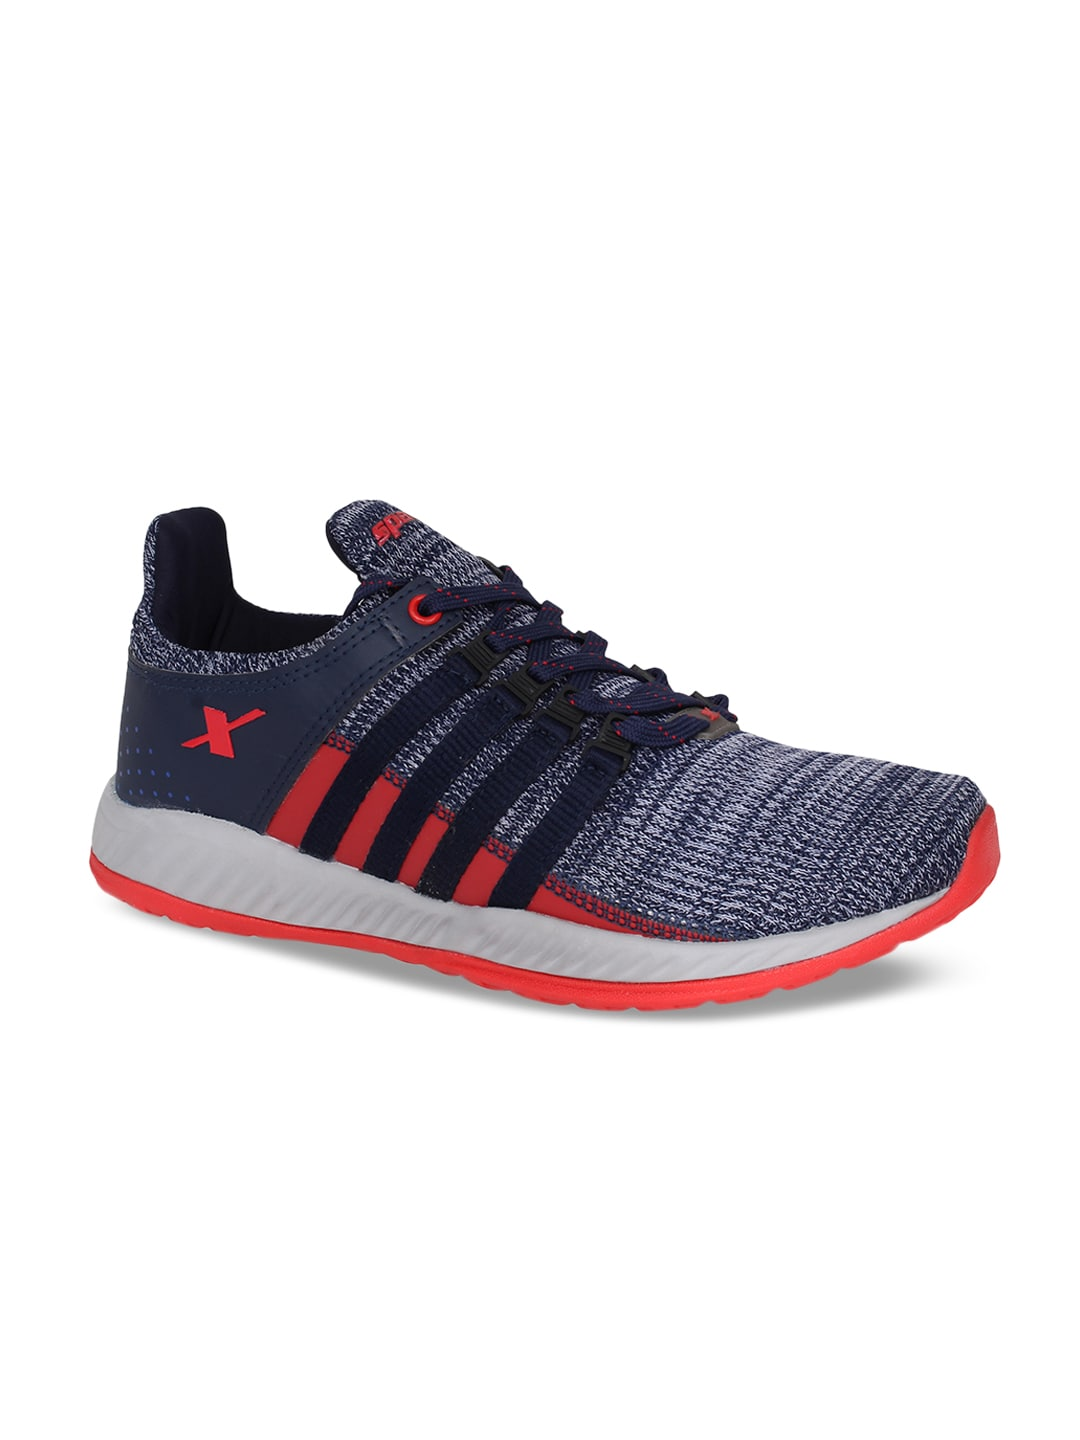 2270d833ebda Sports Shoes for Men - Buy Men Sports Shoes Online in India - Myntra